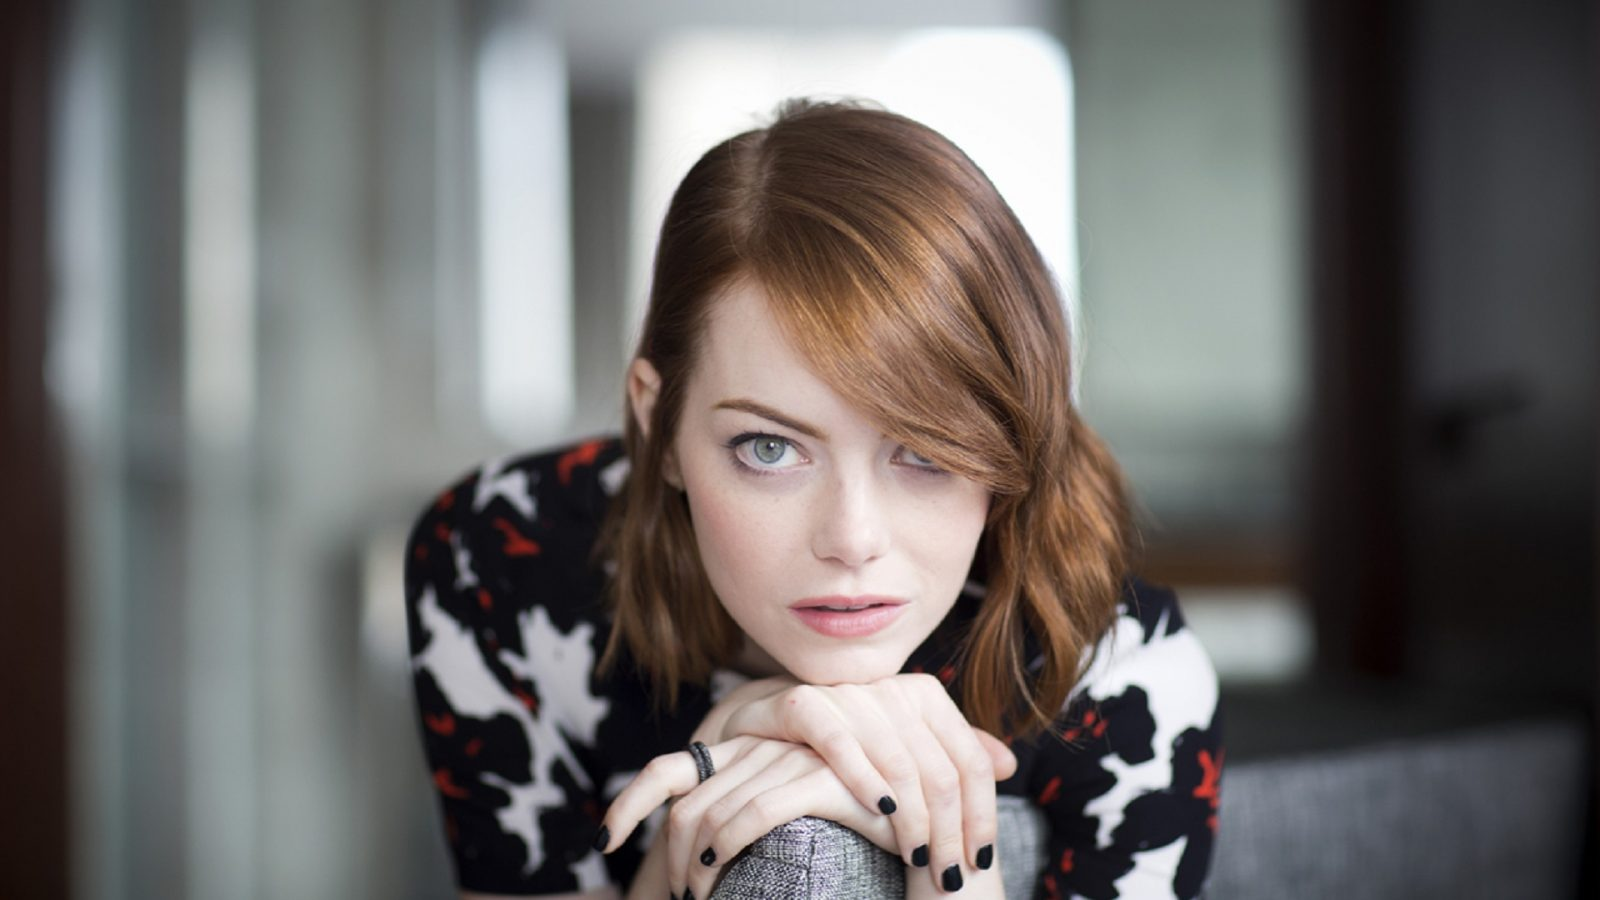 Emma Stone Eyes Wallpaper Background Hd Wallpaper Background